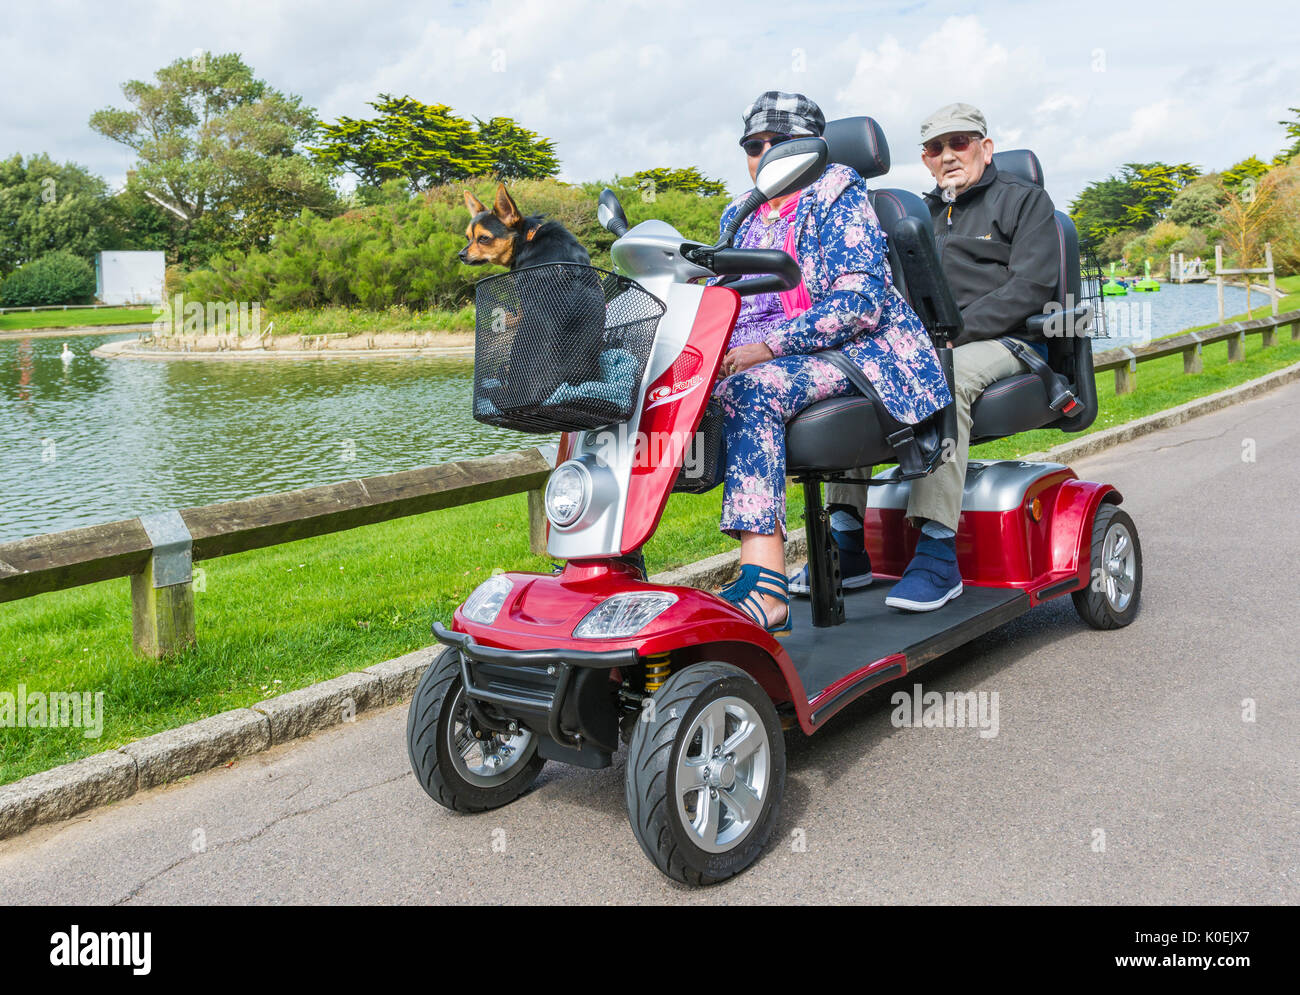 Kymco 2 seater electric mobility scooter with a dog riding in the front basket. Disability scooter for the disabled. Dual person. 2 seats. - Stock Image